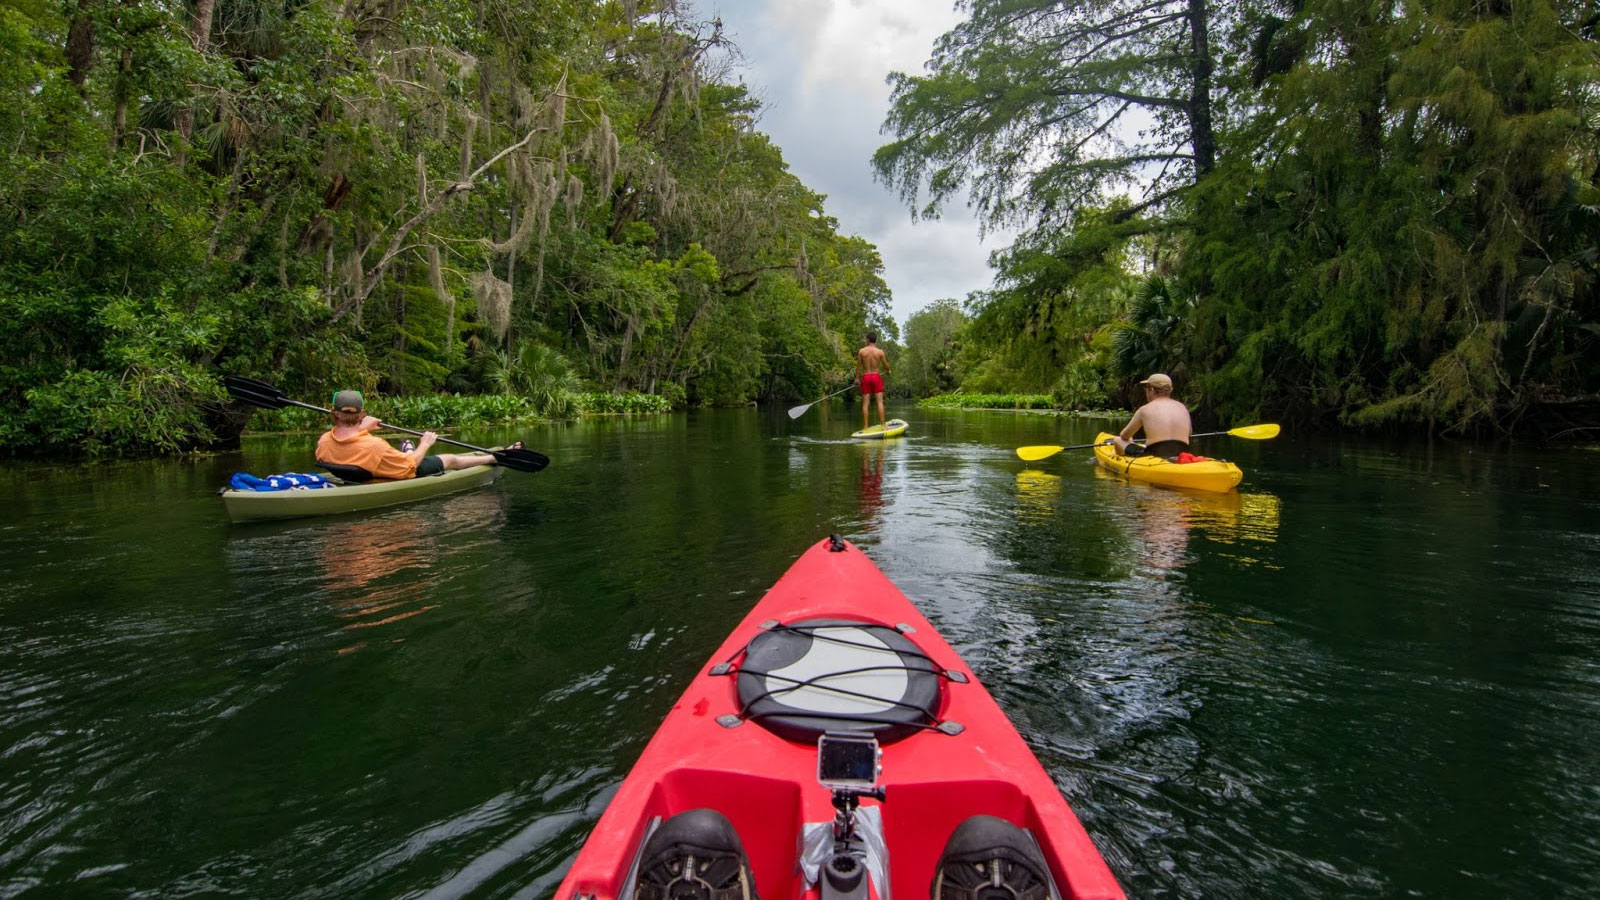 People kayaking and paddle boarding.